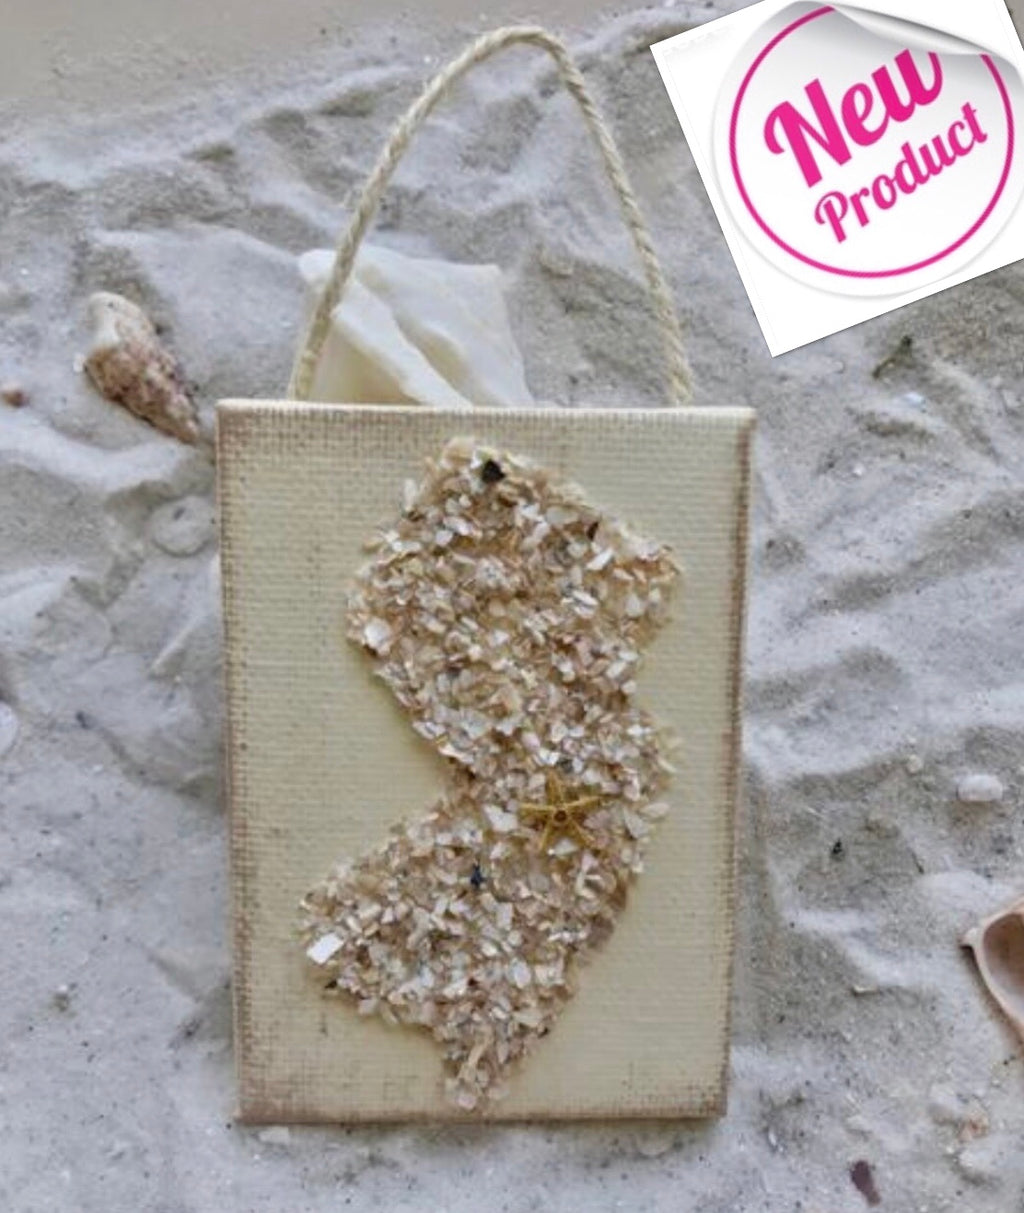 Jersey State Shape Ornament Made With Crushed Shells